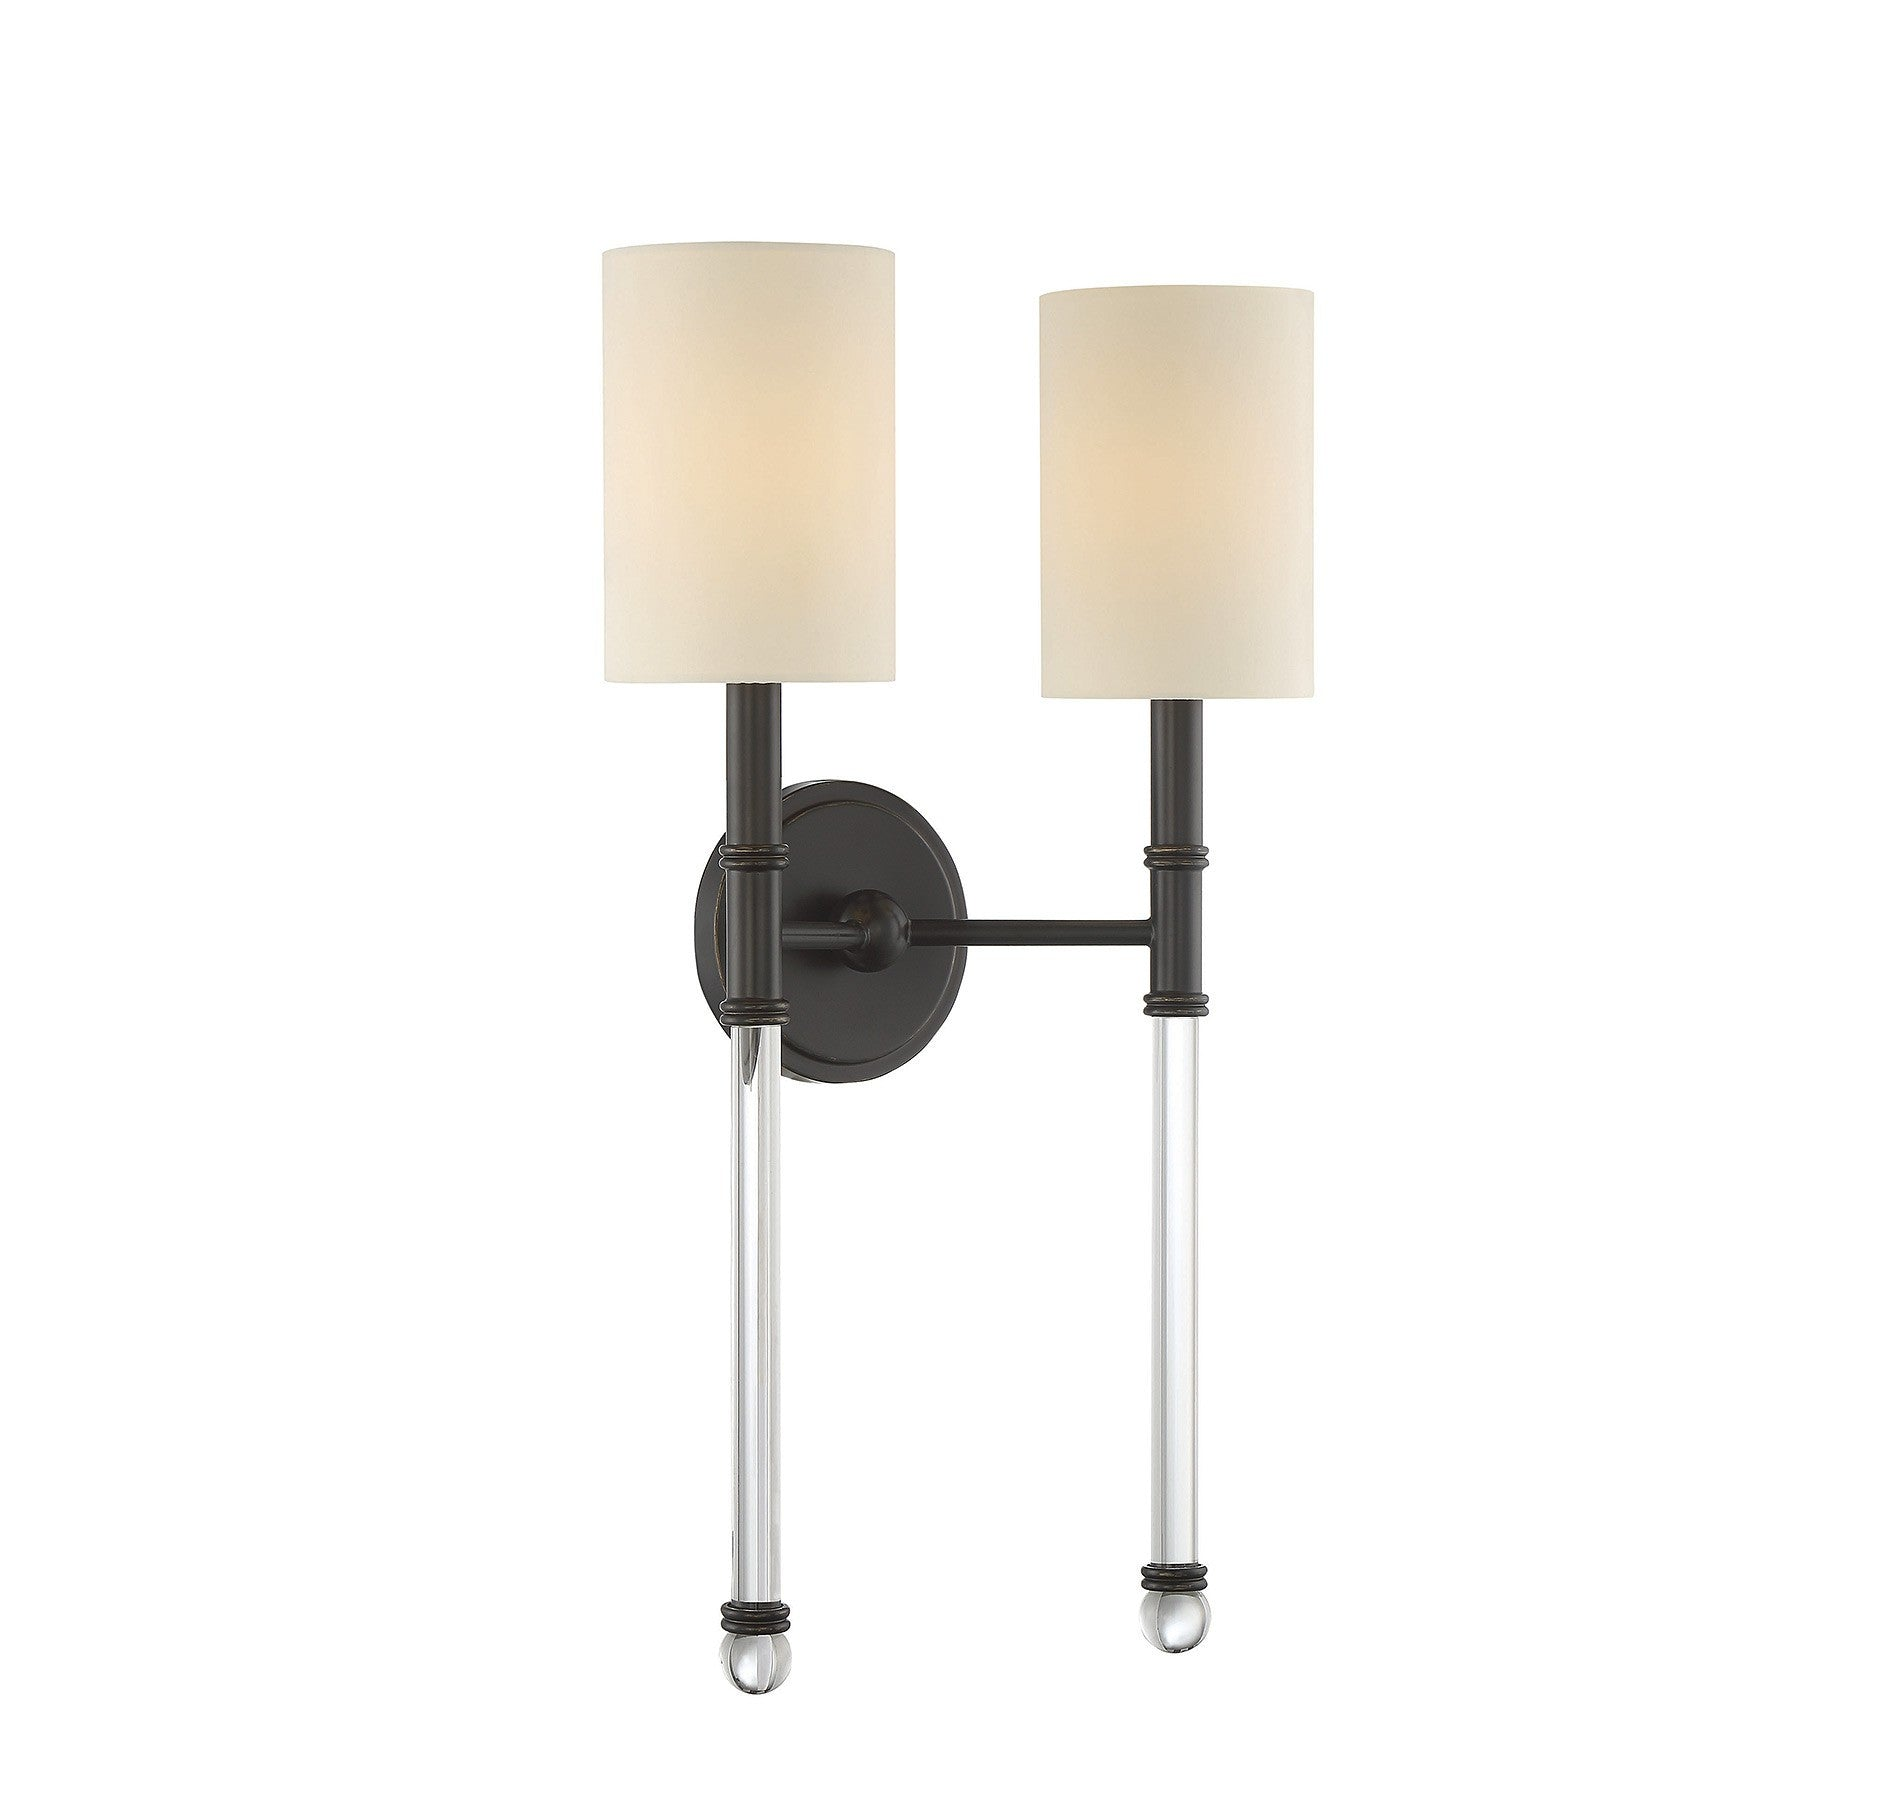 Savoy House Fremont 2 Light Wall Sconce in Polished Nickel and Soft White Fabric Shade 9-103-2-109